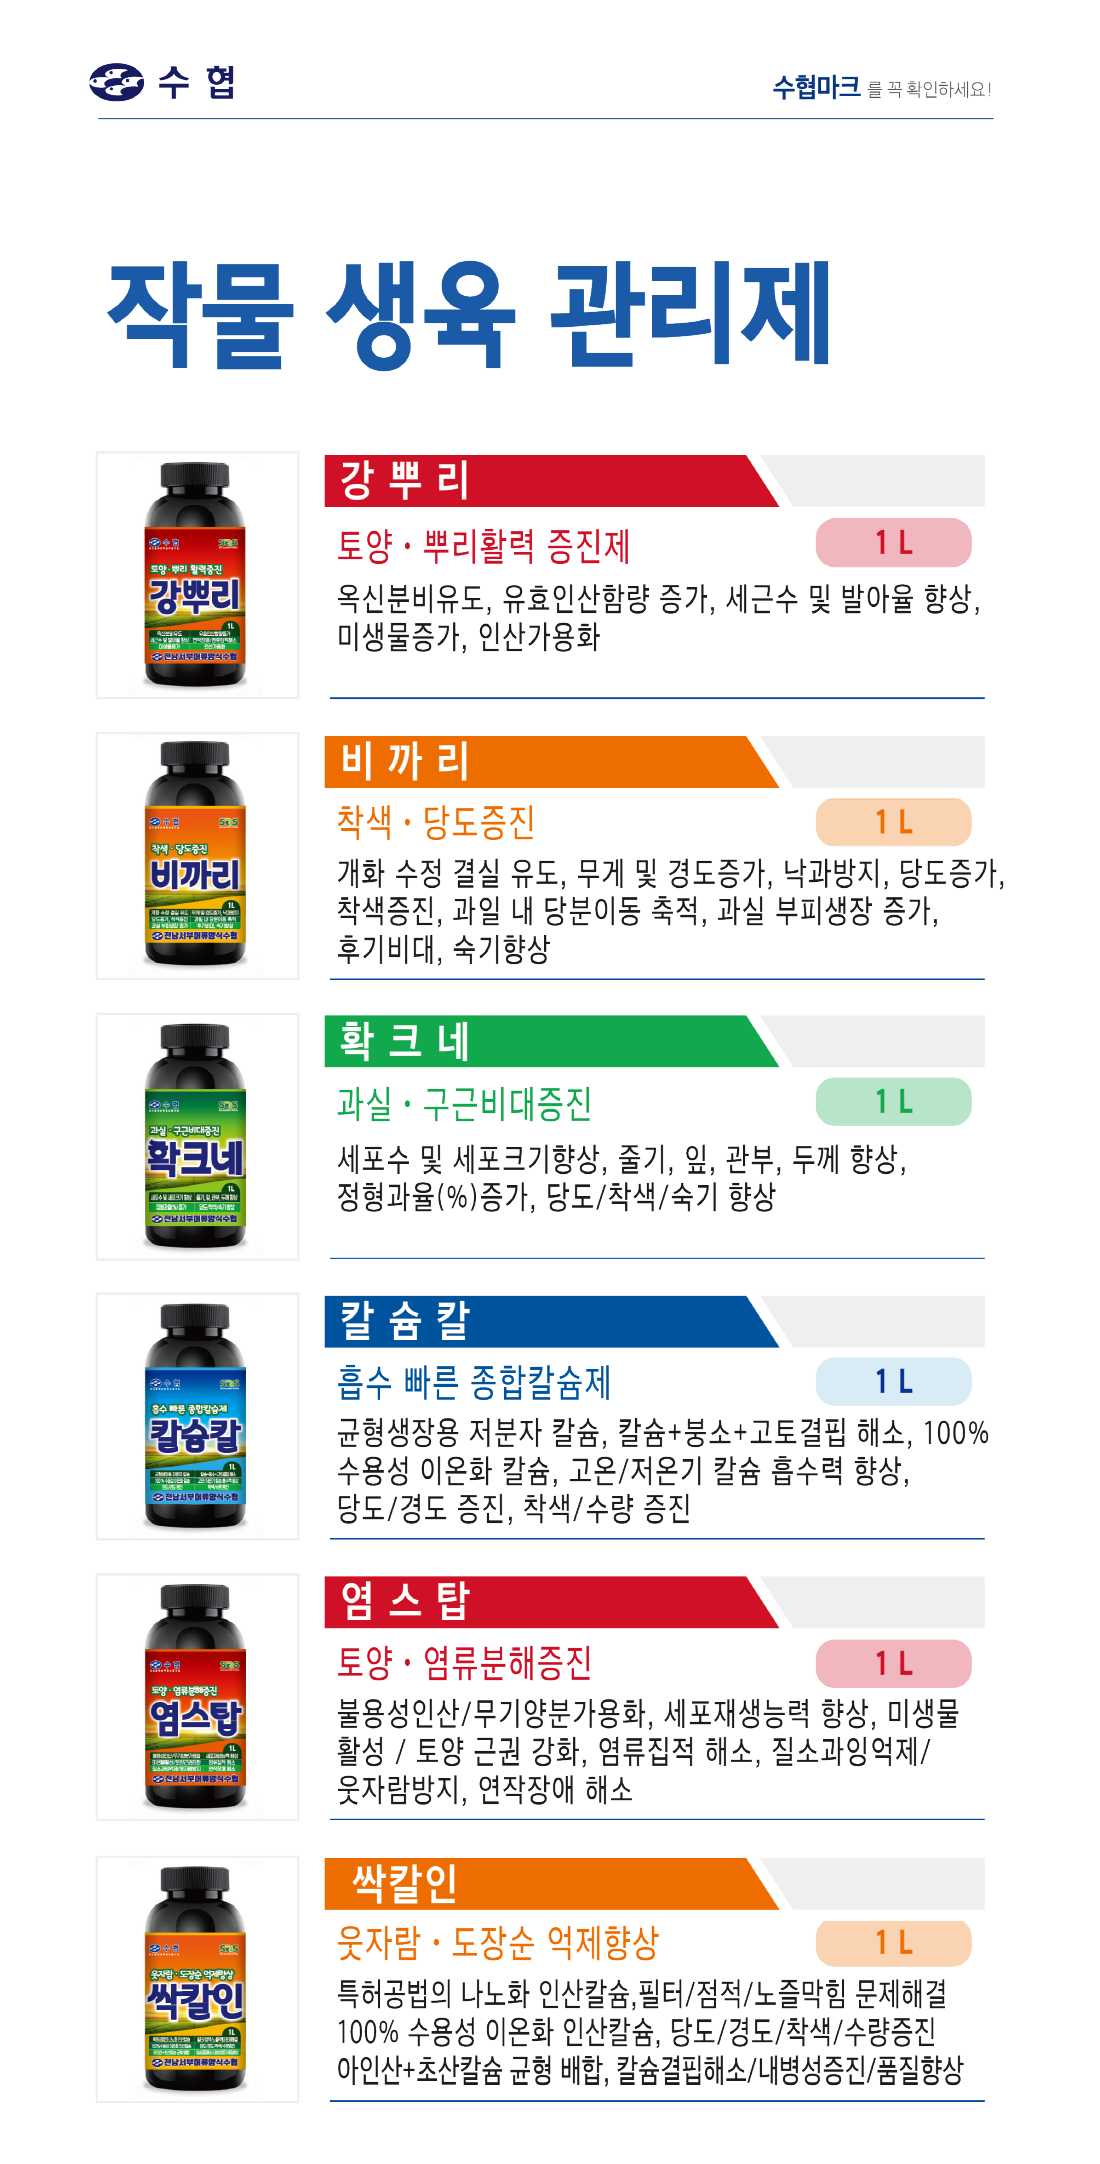 http://suhyup2019.handpr.kr/bs/se2/imgup/1589964680det1_s.png